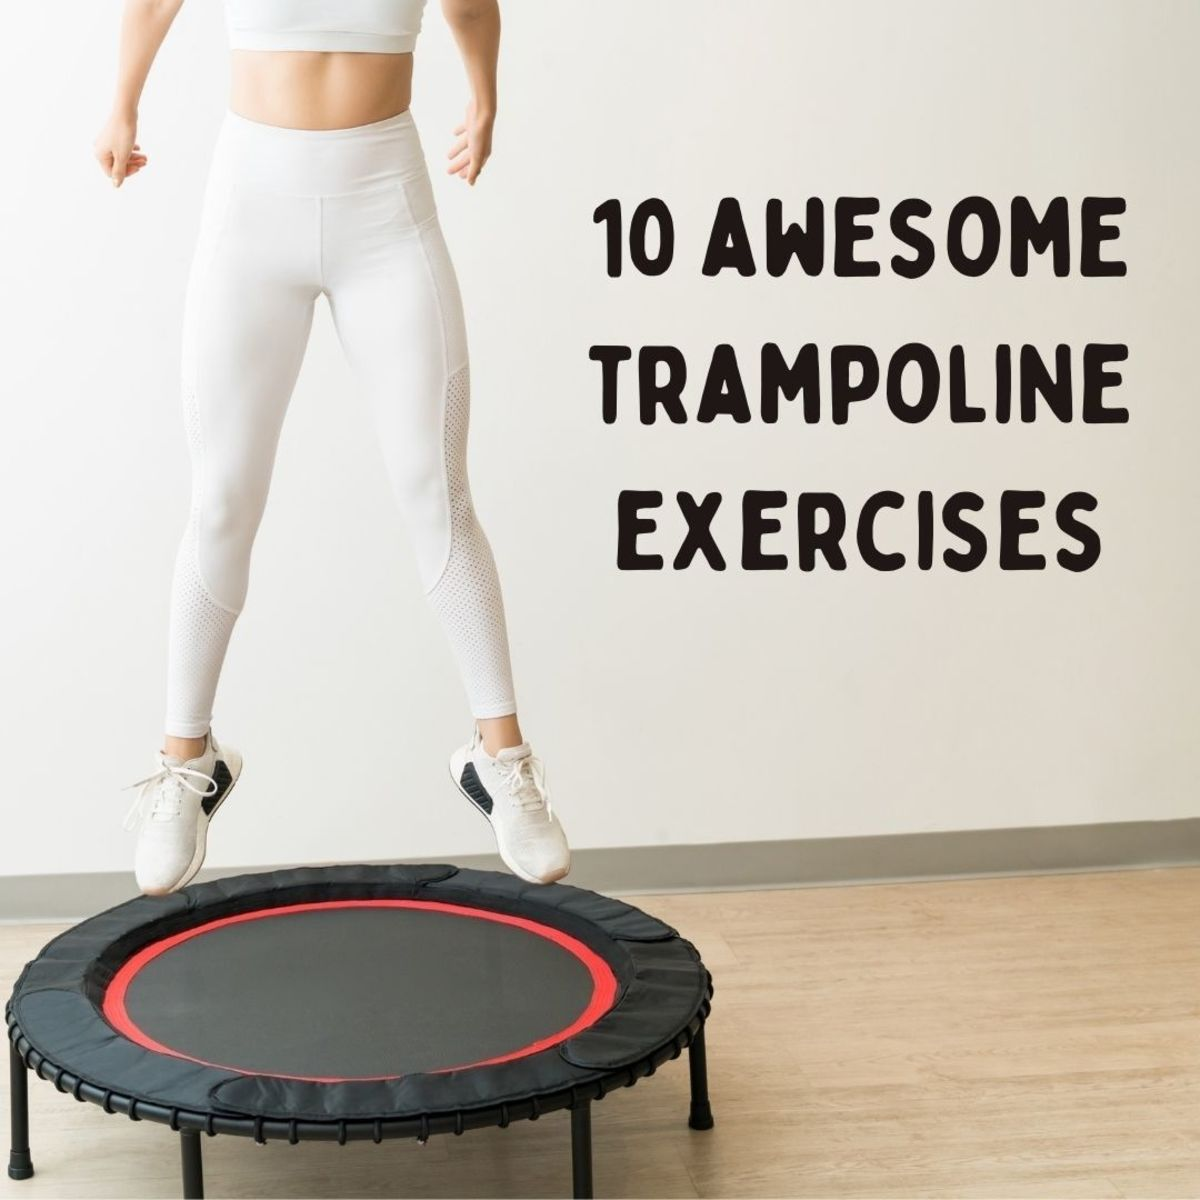 Get the Most out of Your Trampoline: 10 Great Exercises